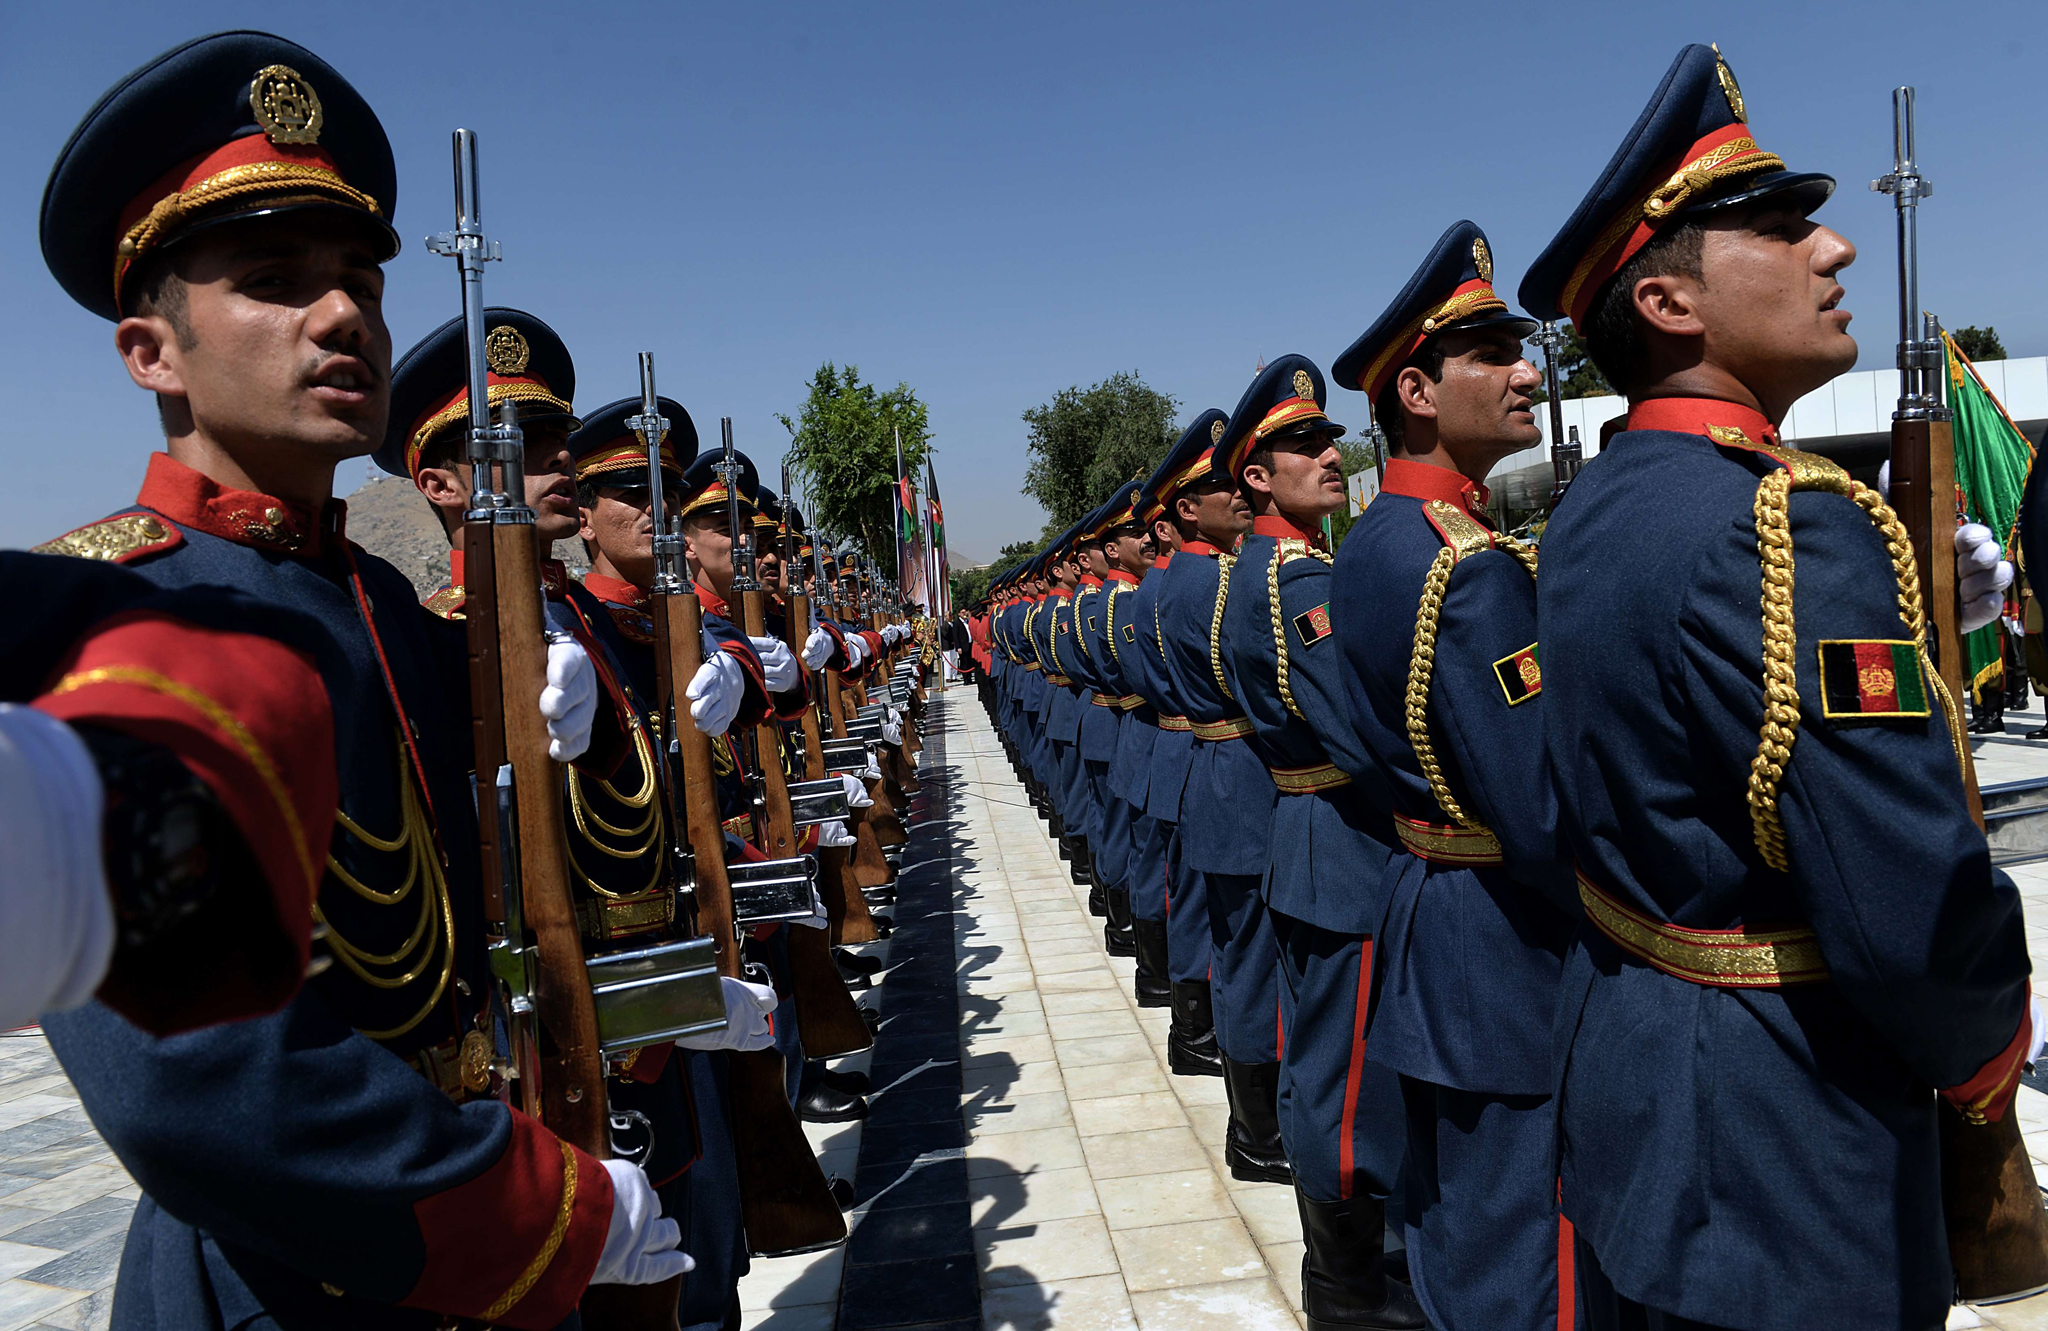 An Afghan guard of honour stands as the national anthem plays during an event to mark Independence Day at the Ministry of Defence compound in Kabul